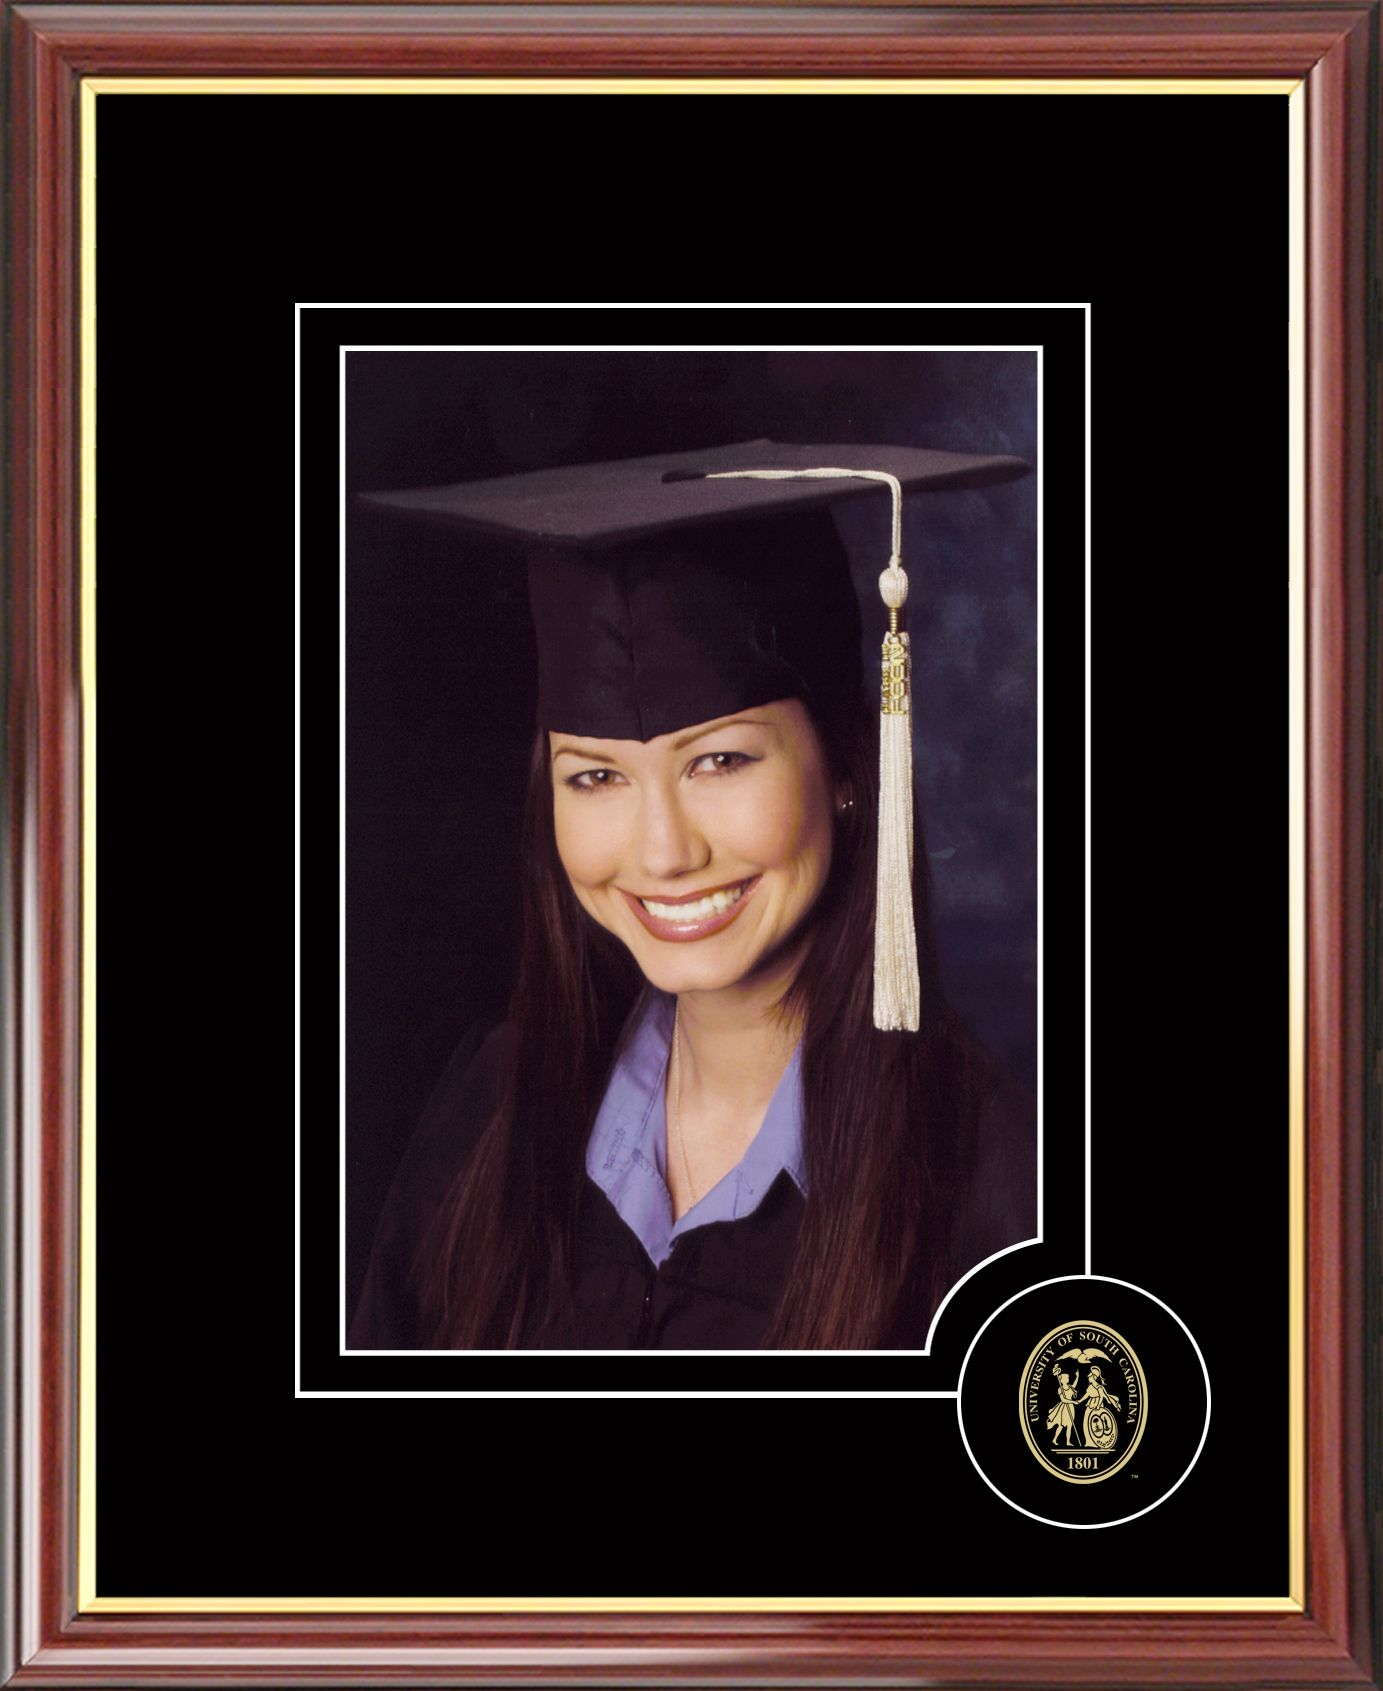 University of South Carolina 5X7 Graduate Portrait Frame